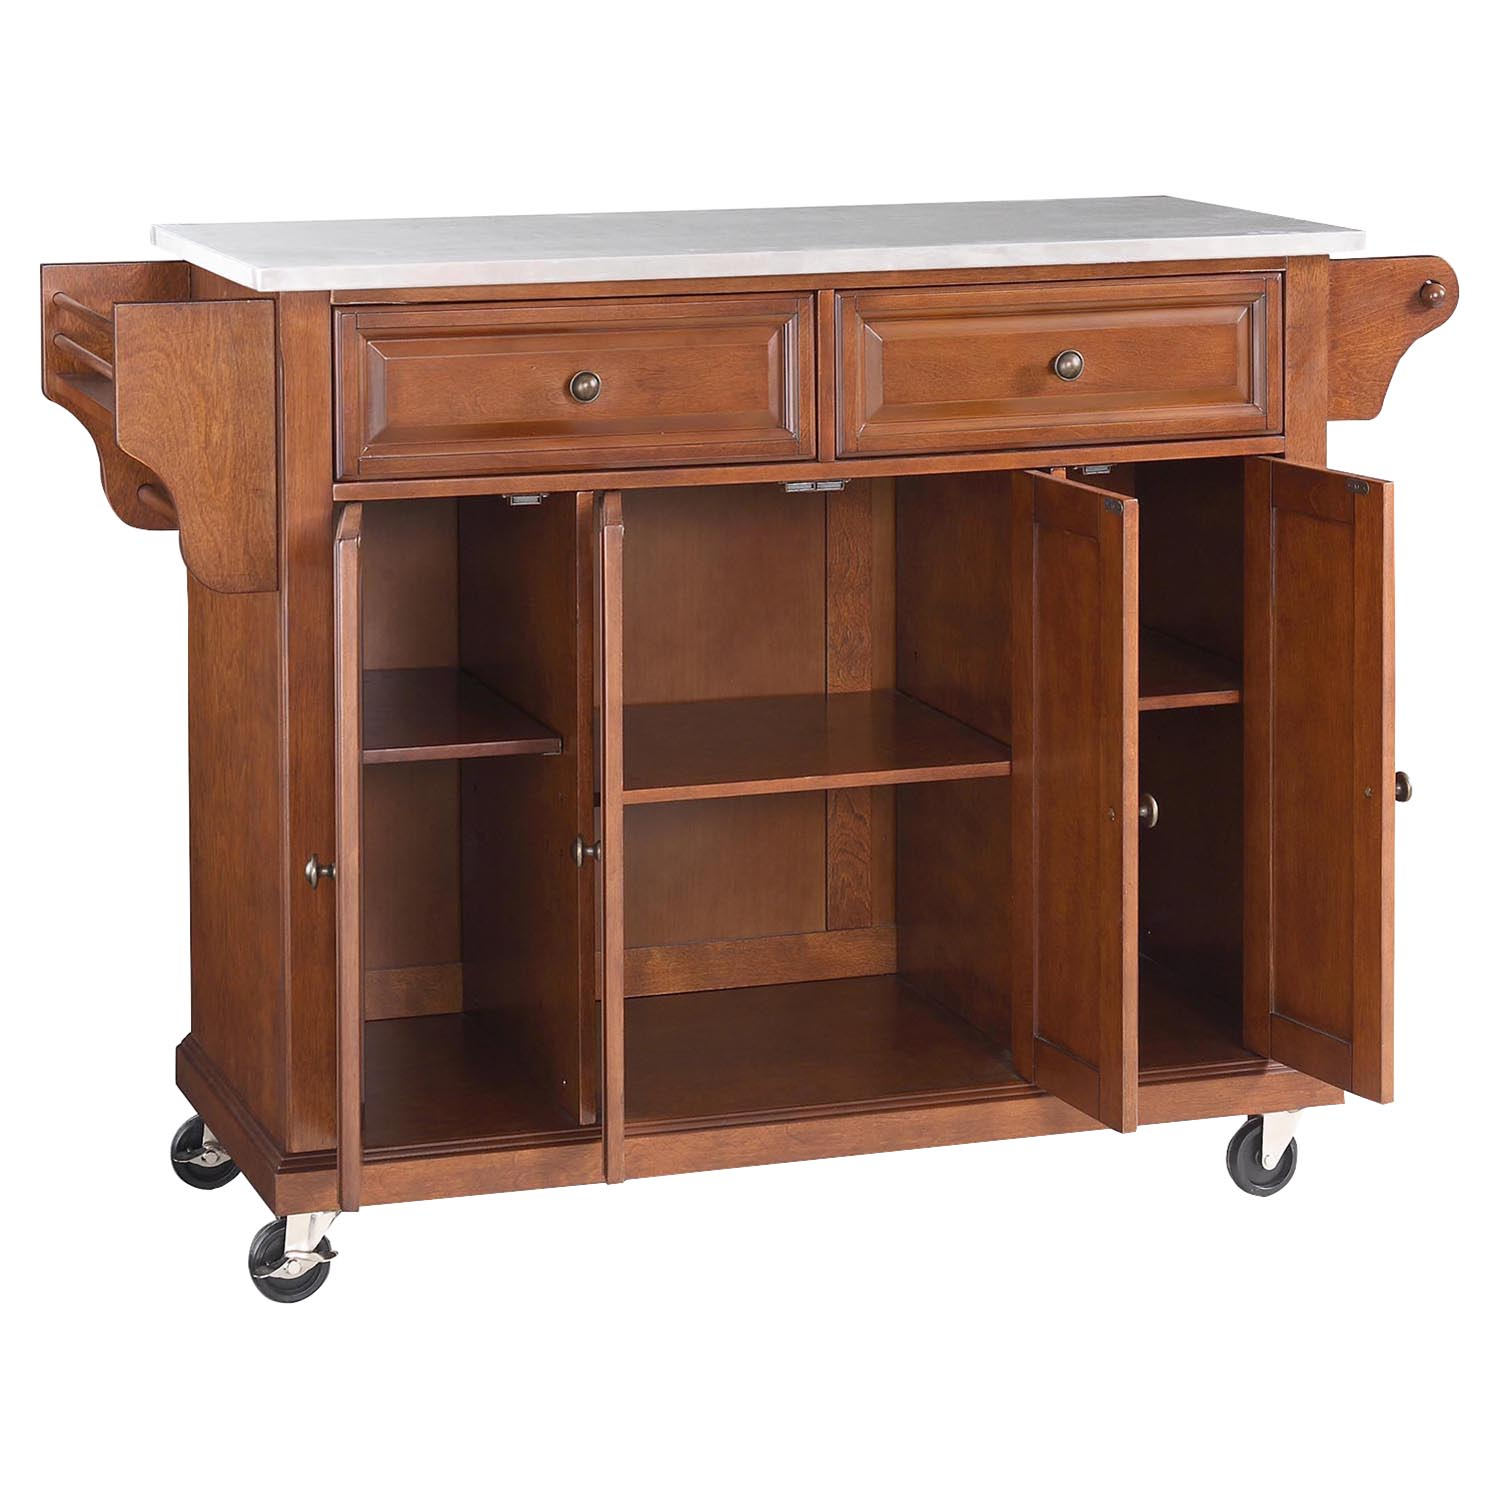 Stainless Steel Top Kitchen Cart Island Casters Classic Cherry Dcg Stores